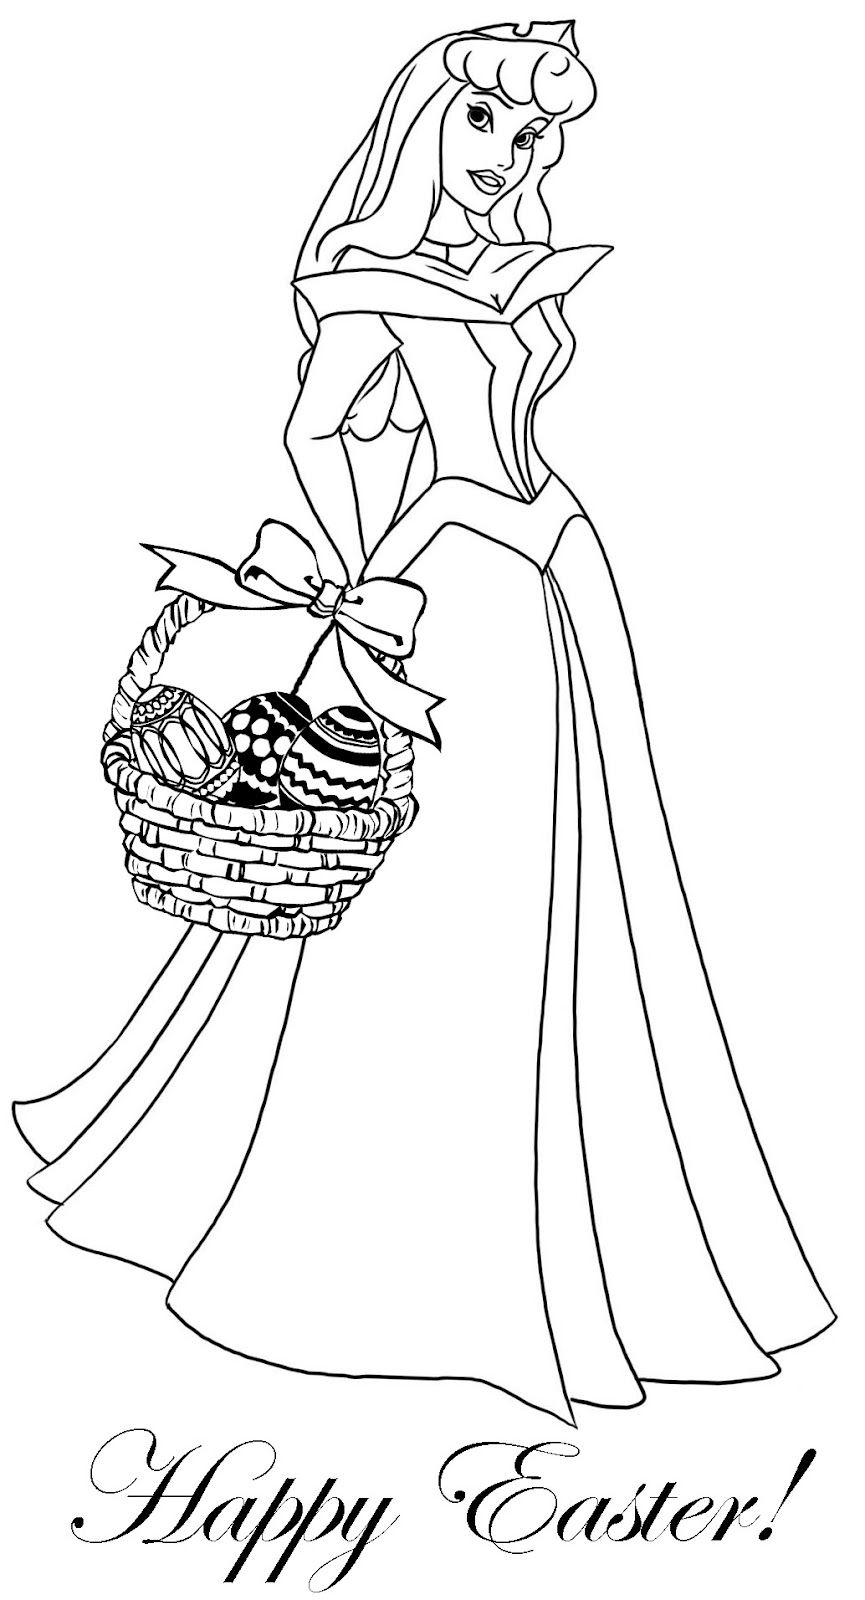 Princess Coloring Pages Princess Coloring Pages Disney Princess Coloring Pages Princess Coloring